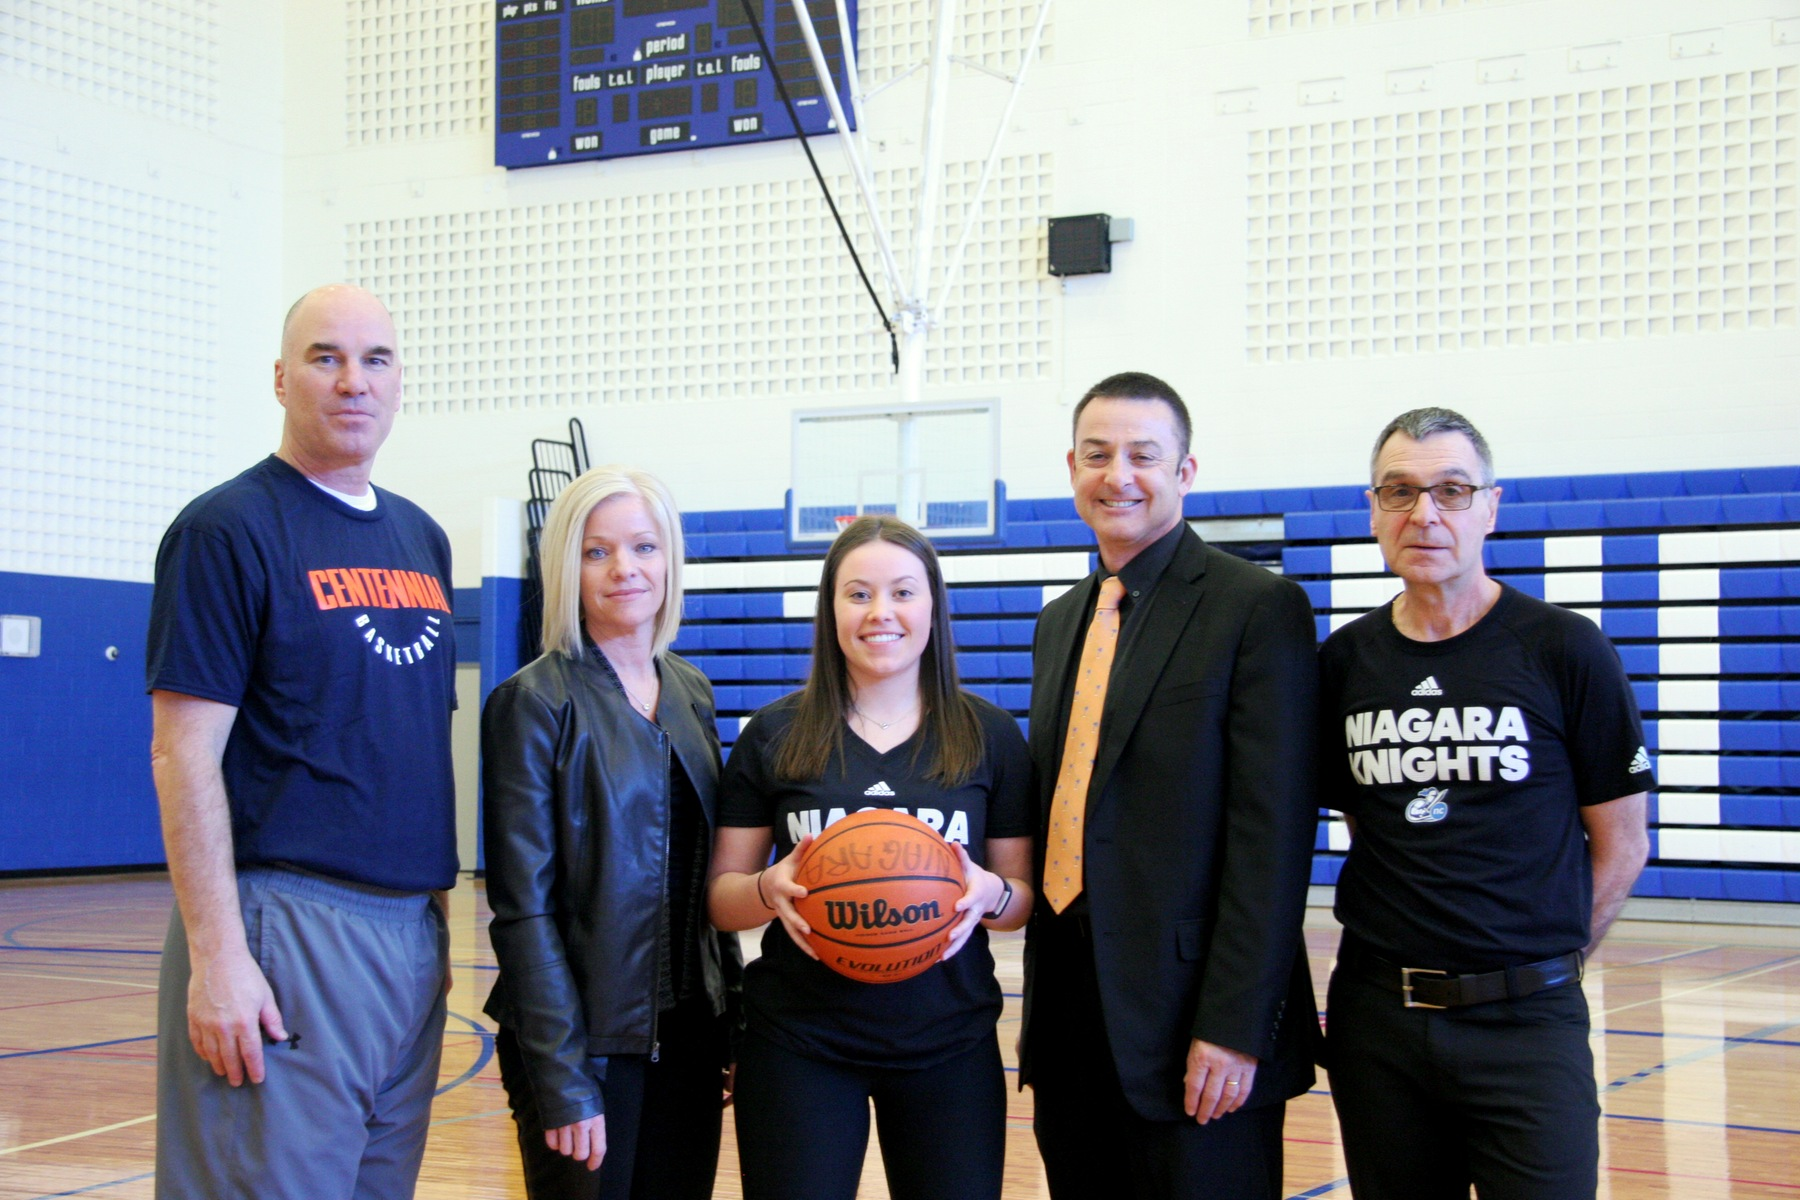 Kirstyn Atkins joins Niagara Knights women's basketball